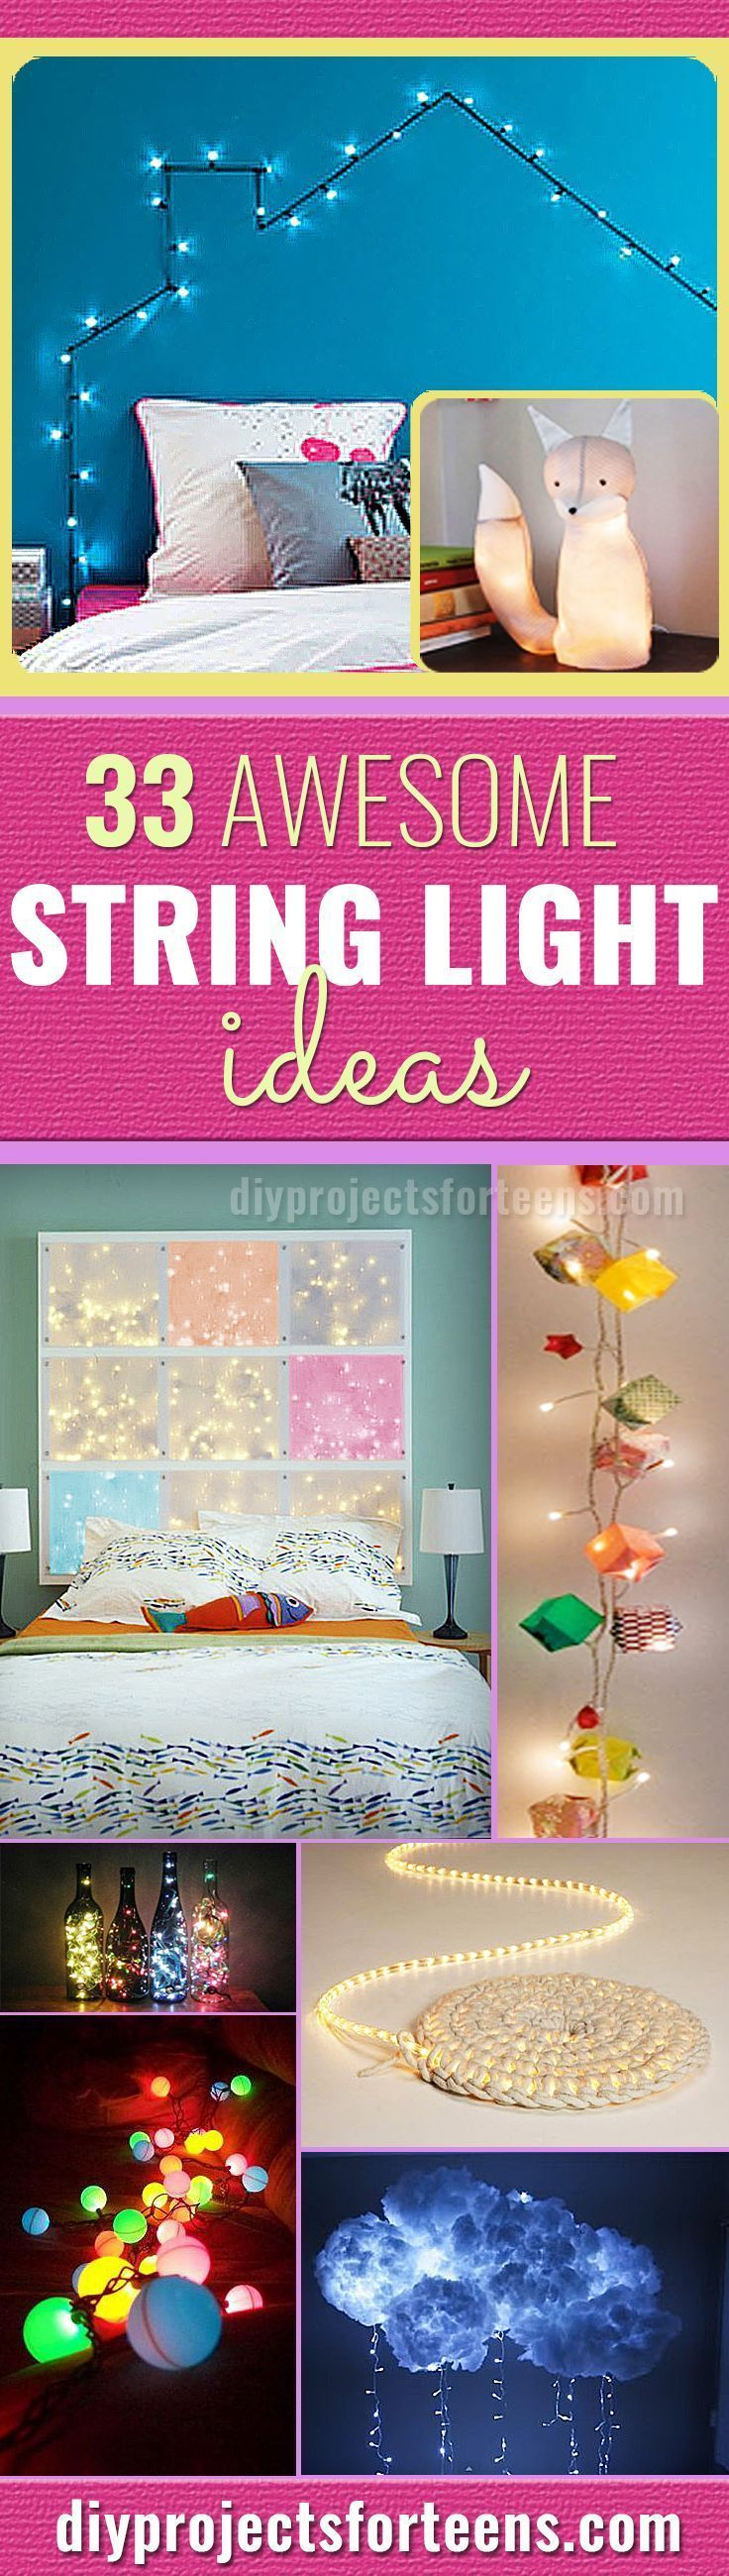 1000+ images about Crafts for Teens on Pinterest